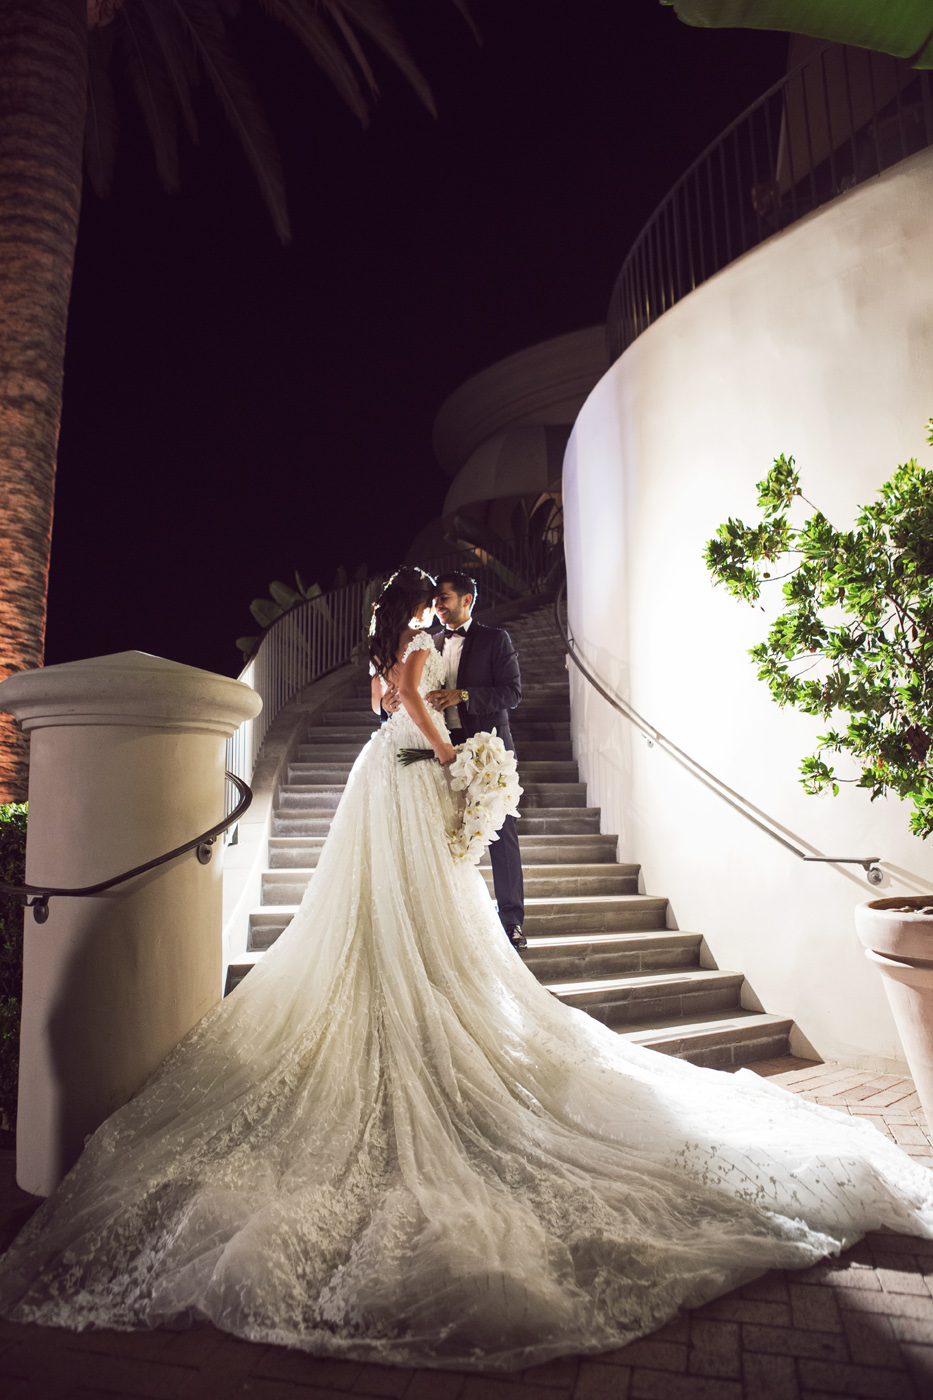 143DukePhotography_DukeImages_weddings_losangeles.jpg